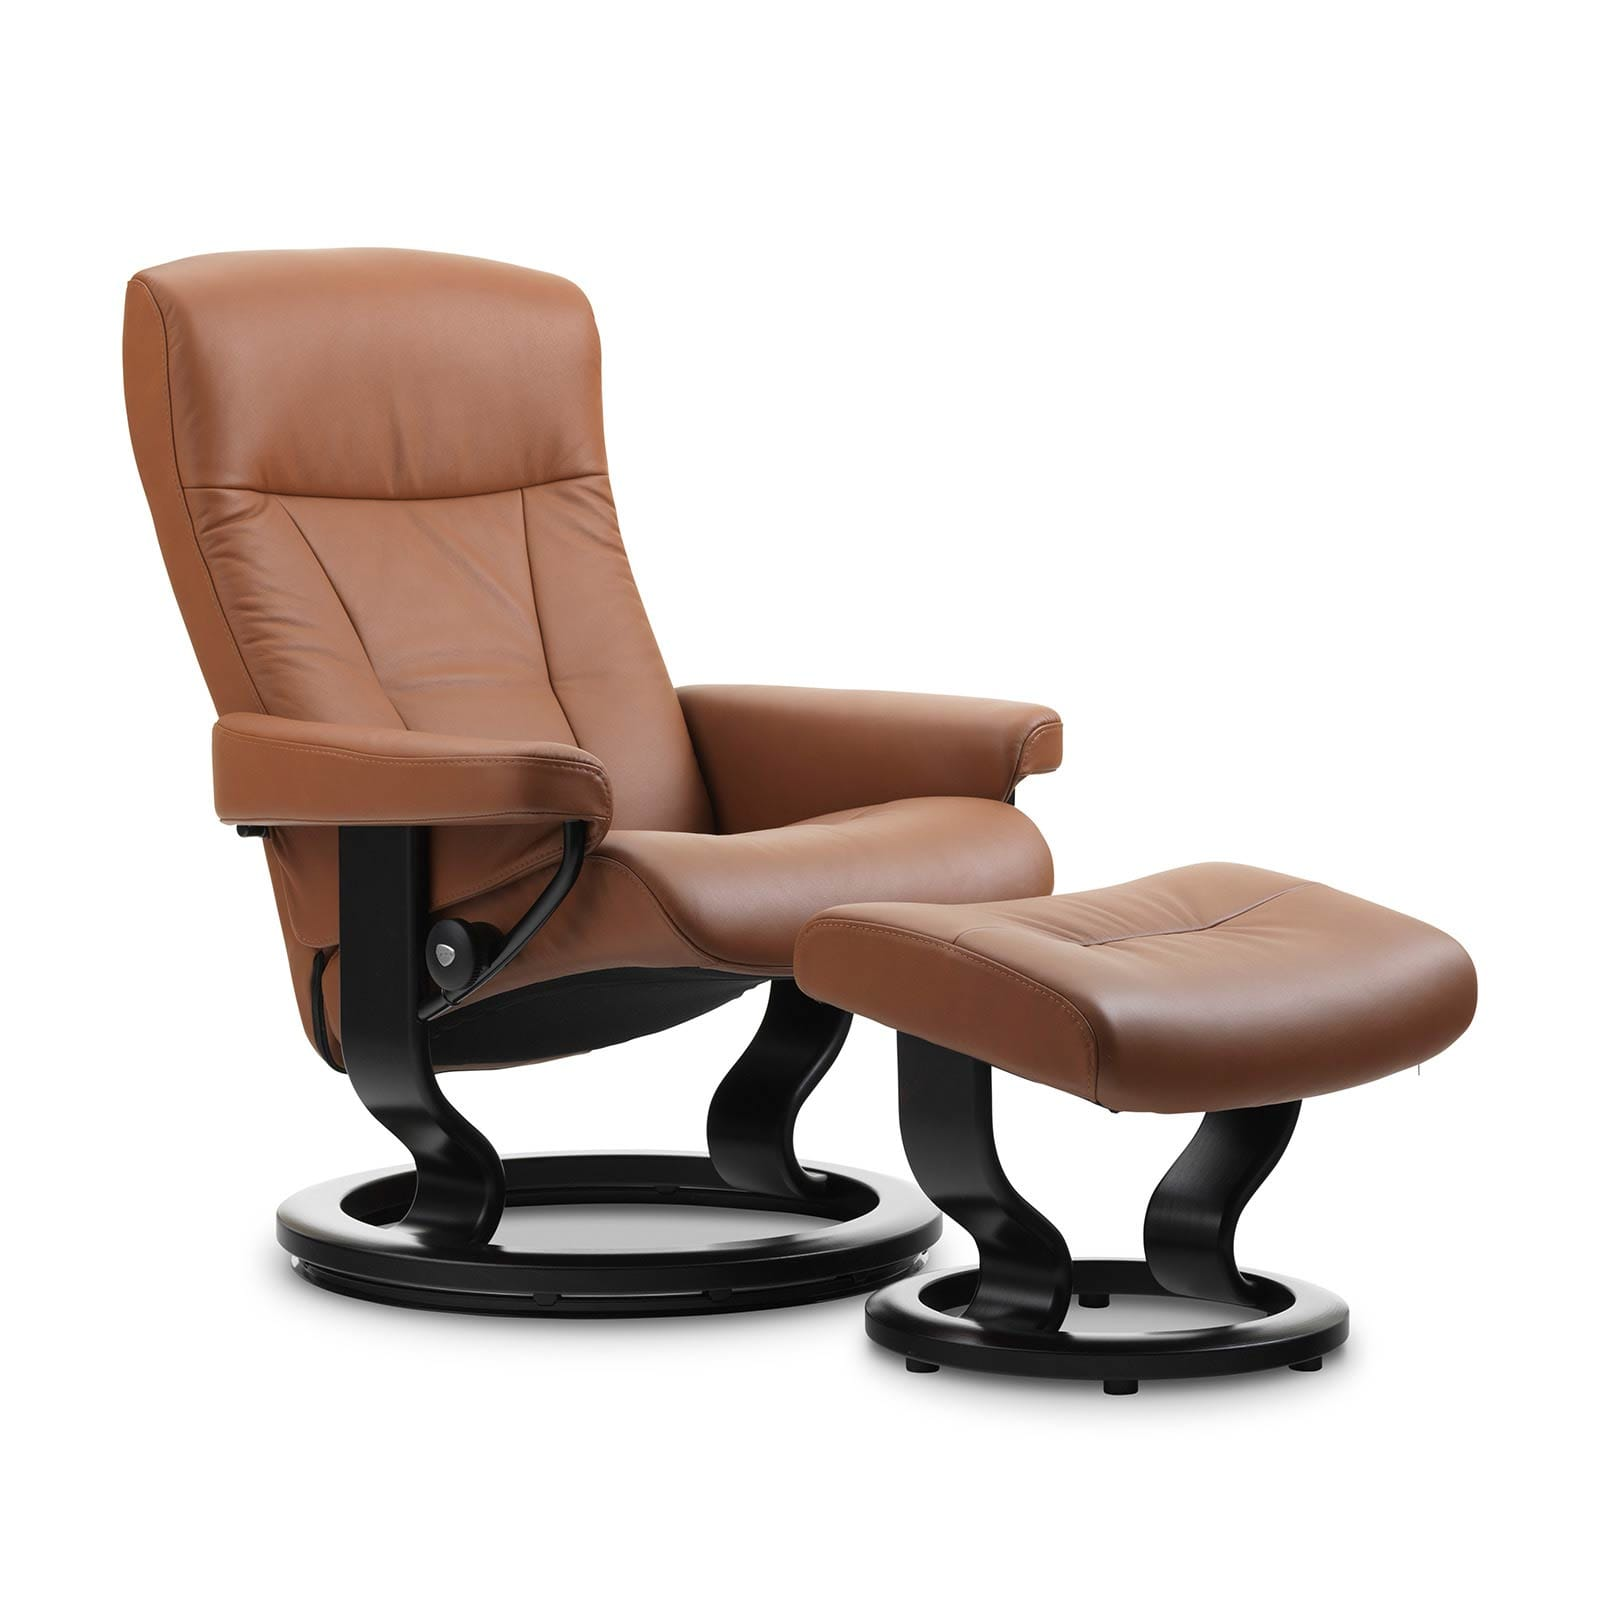 Stressless Sessel City High Back Sessel Mit Hocker Leder Interesting Stressless City High